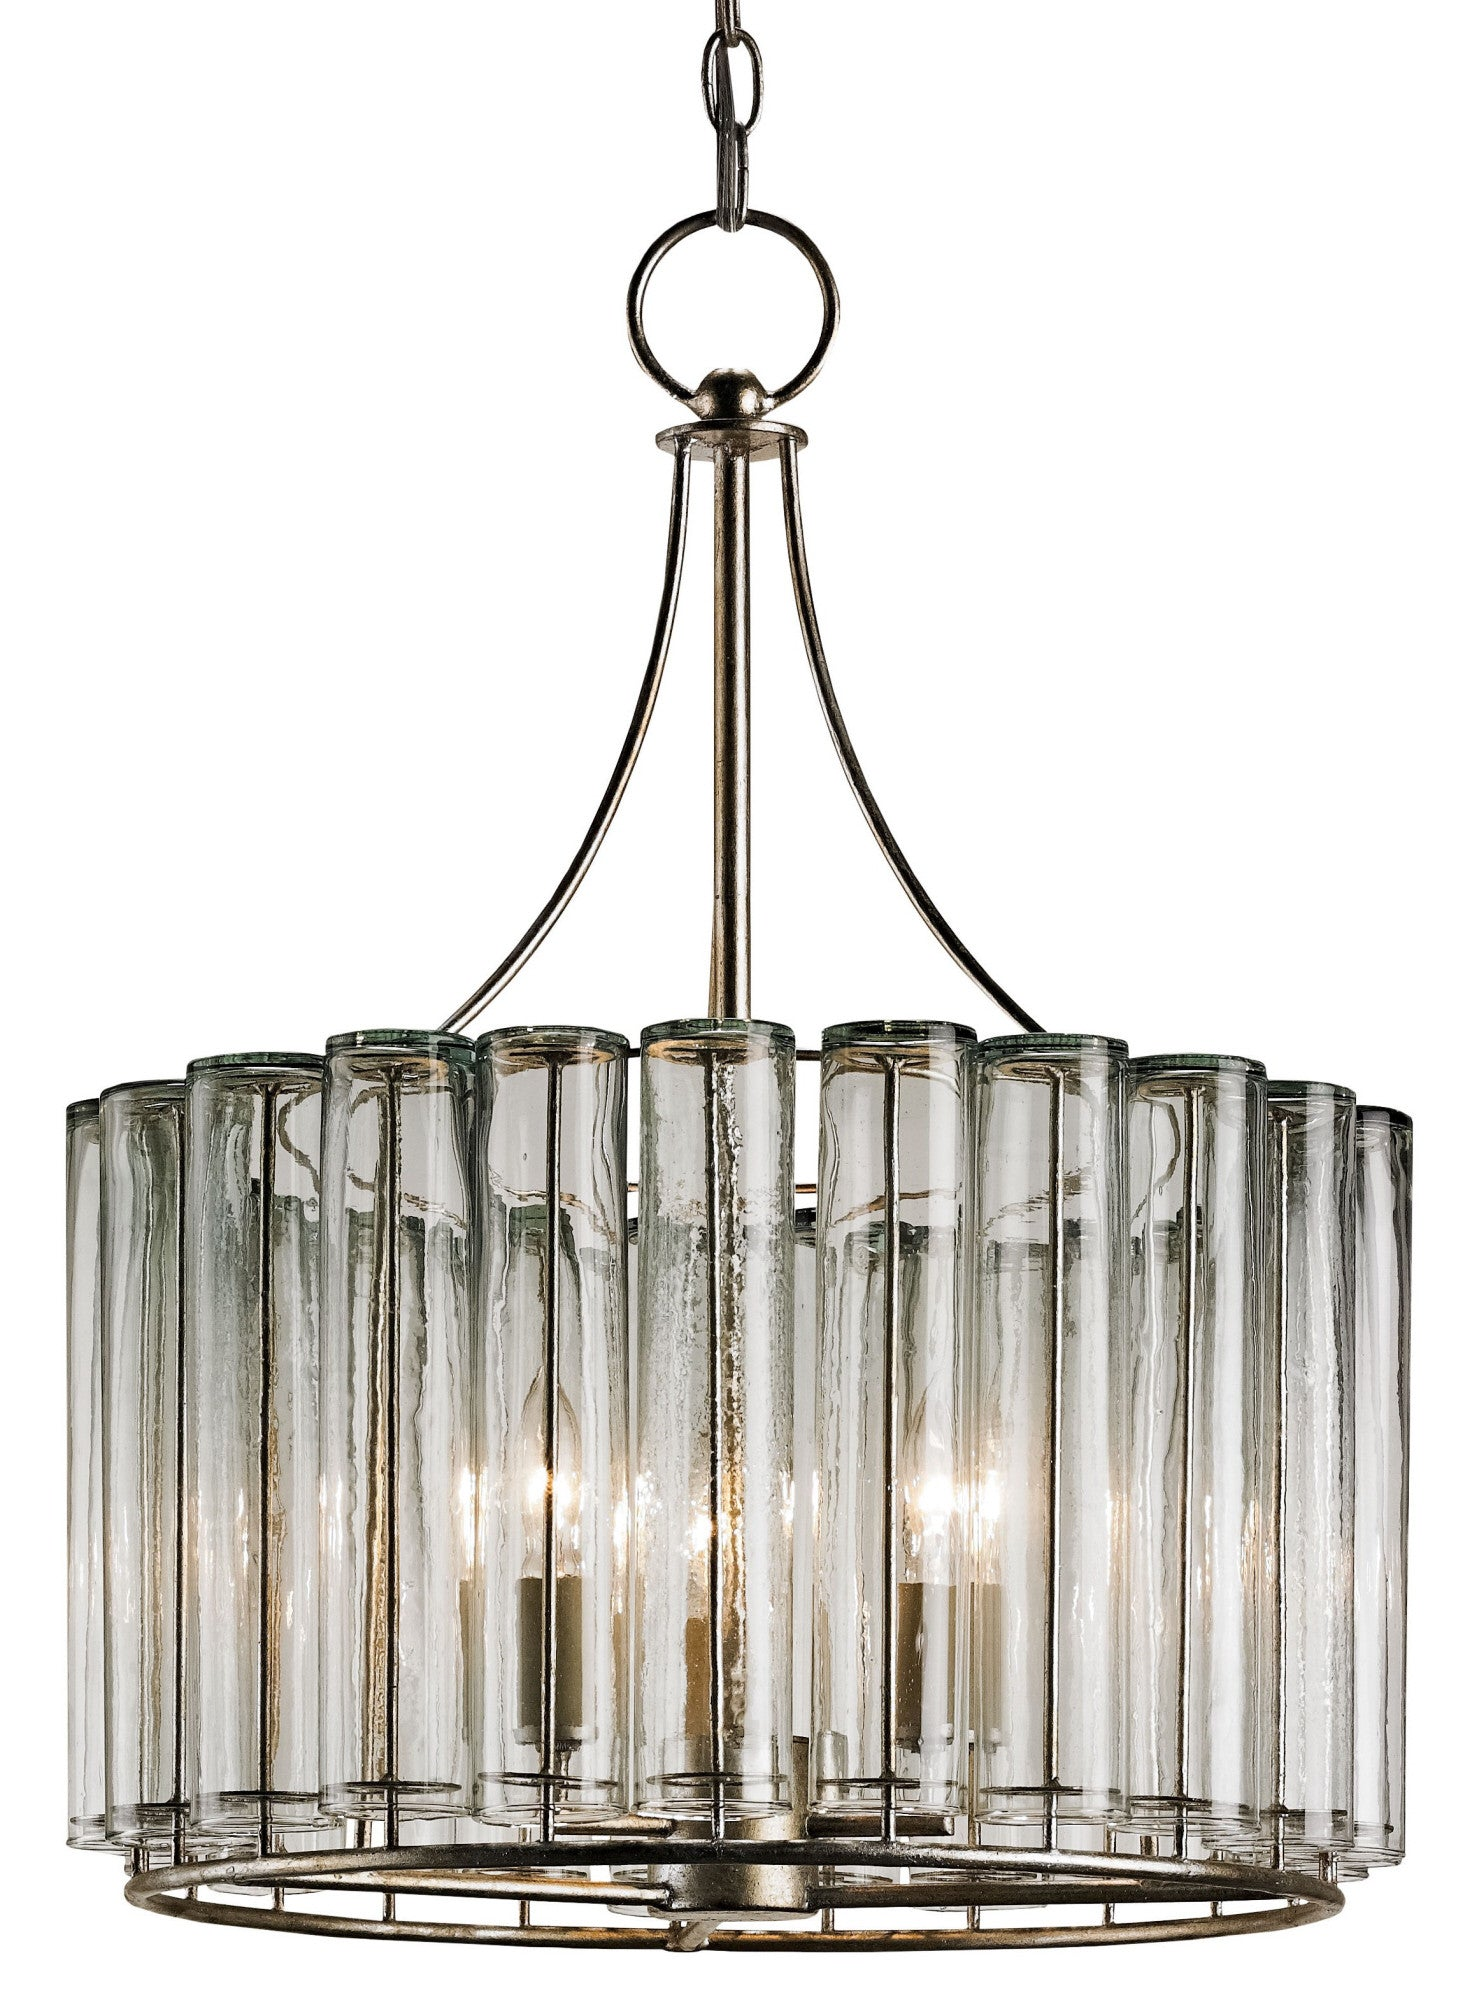 Bevilacqua small chandelier design by currey company burke decor bevilacqua small chandelier design by currey company mozeypictures Image collections